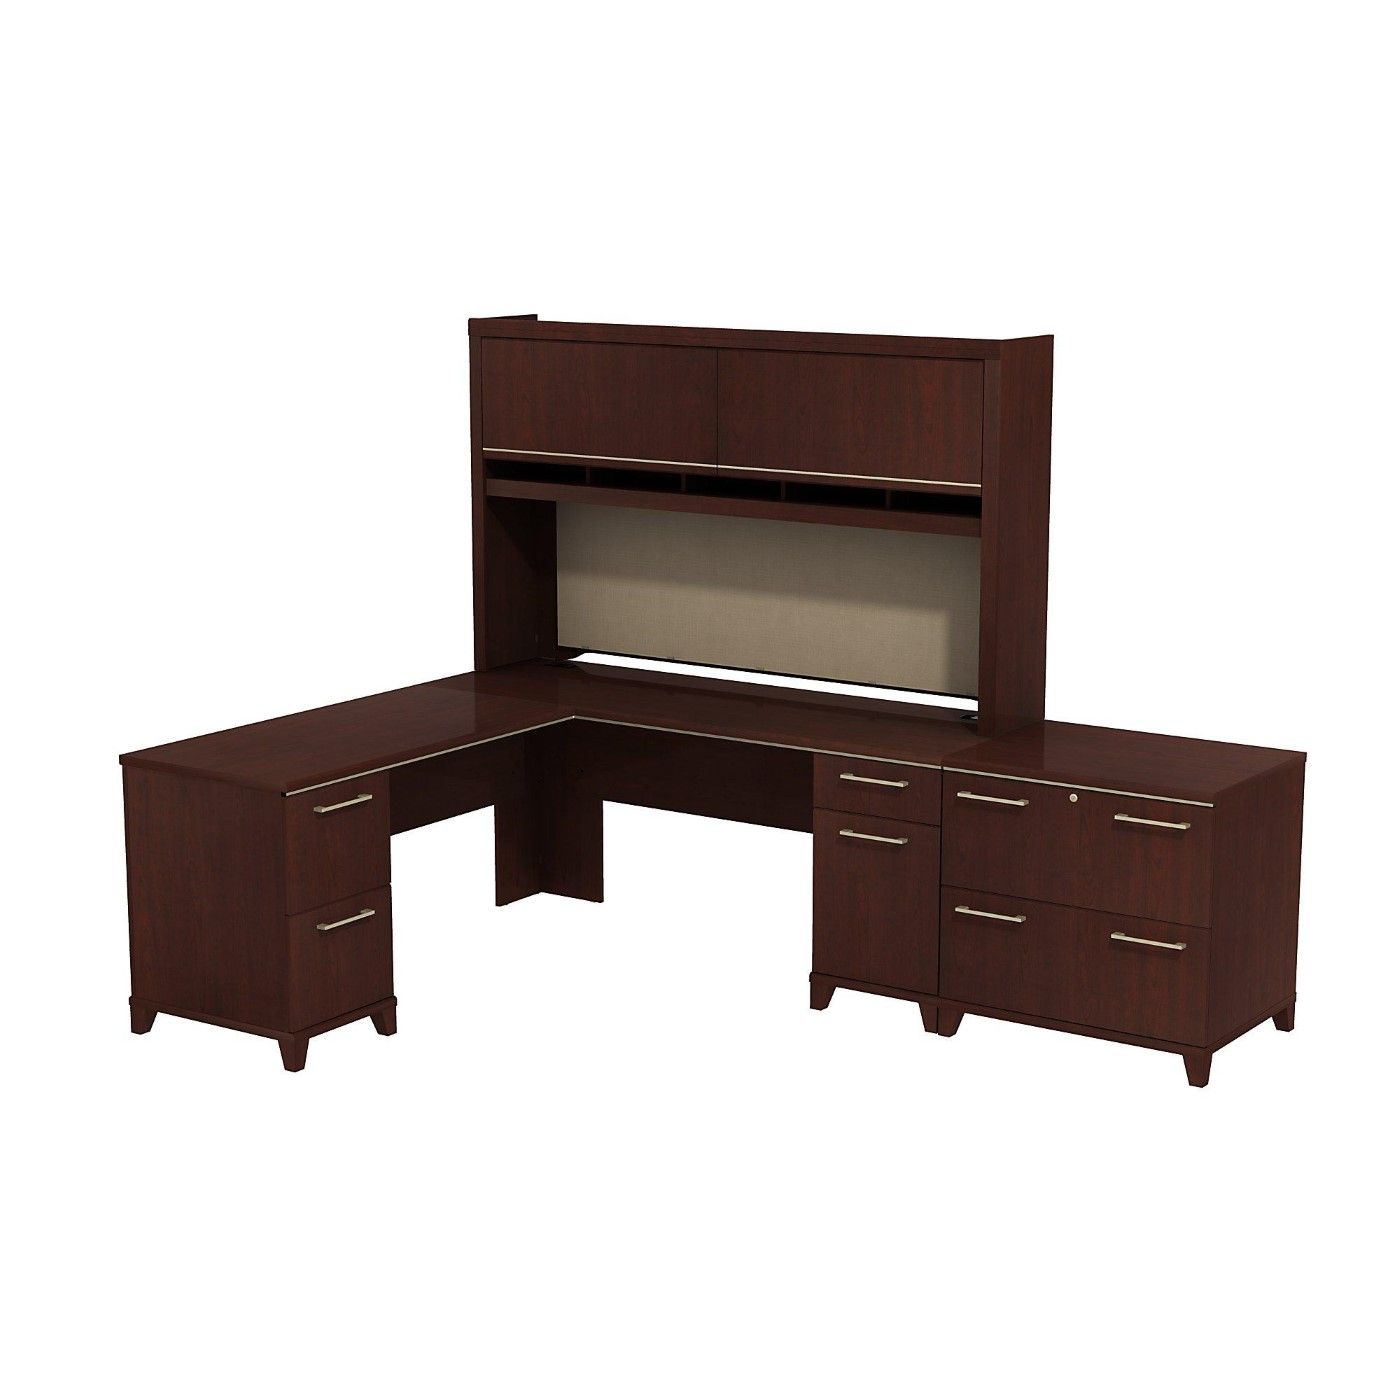 BUSH BUSINESS FURNITURE ENTERPRISE 72W X 72D L SHAPED DESK WITH HUTCH AND LATERAL FILE CABINET #EH-ENT003CS. FREE SHIPPING  VIDEO BELOW.